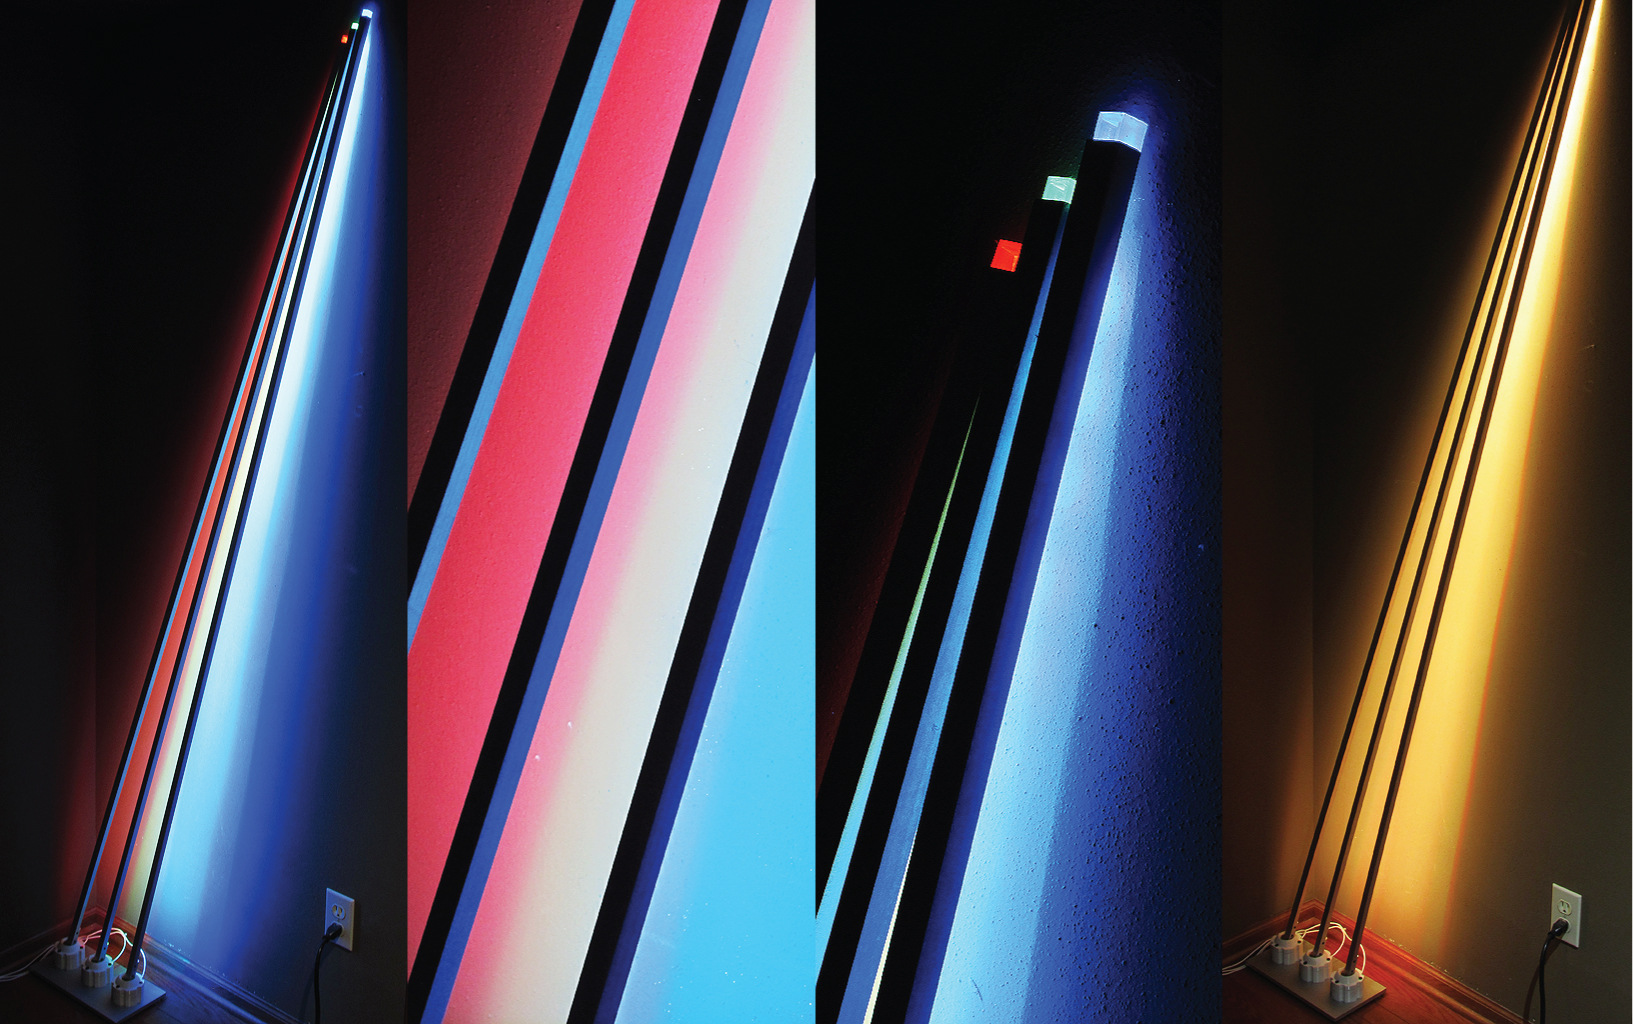 Wands arranged into a vectored arrangement, aimed directly at the wall.